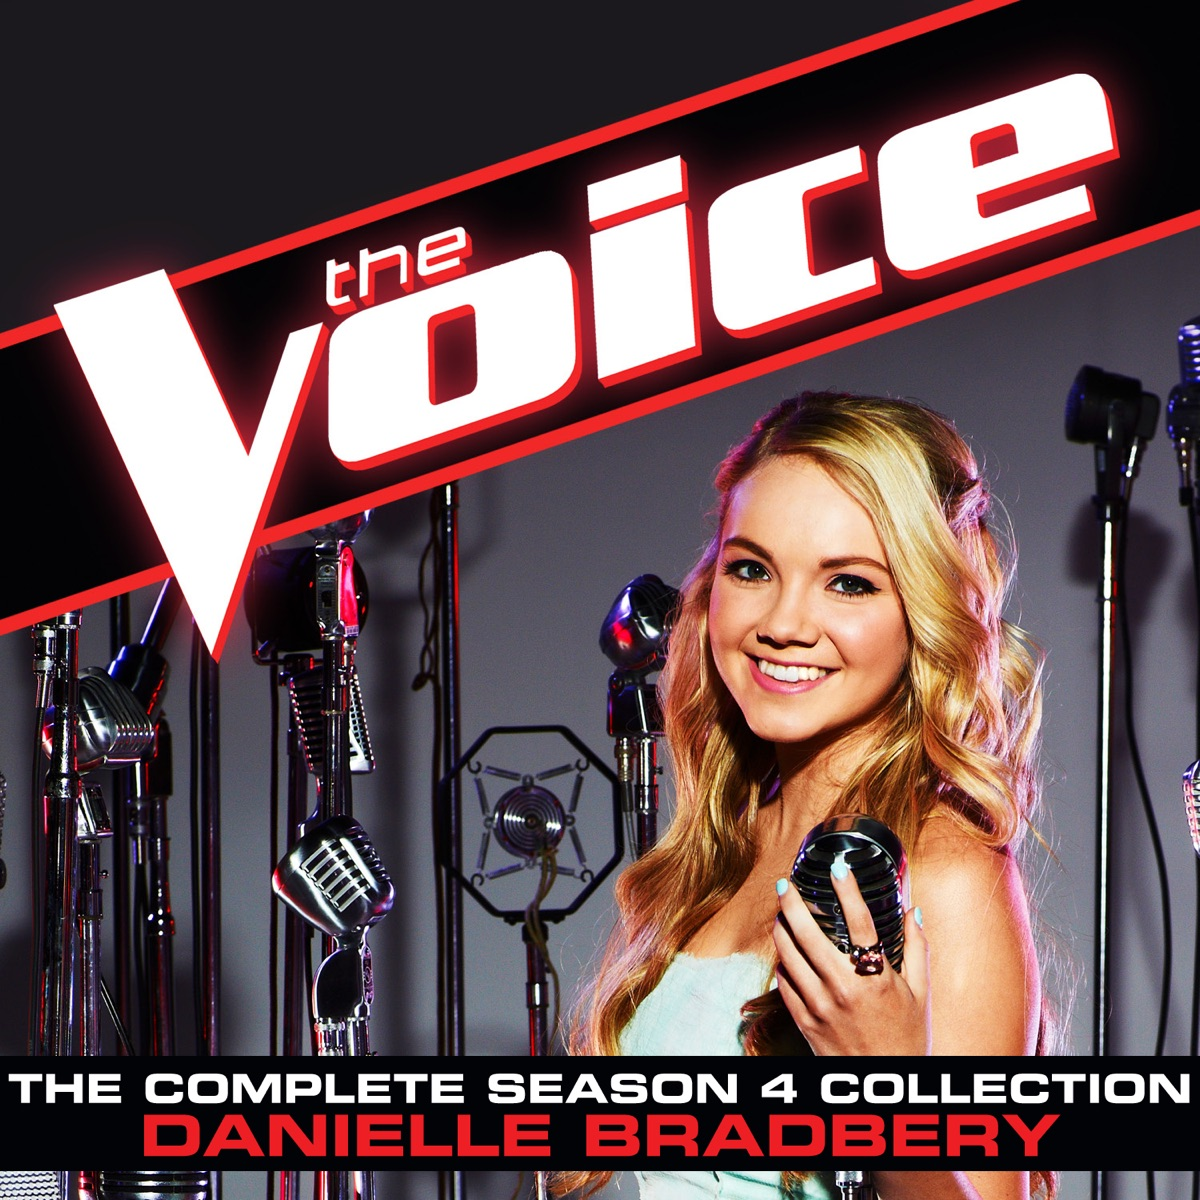 The Complete Season 4 Collection The Voice Performance Danielle Bradbery CD cover